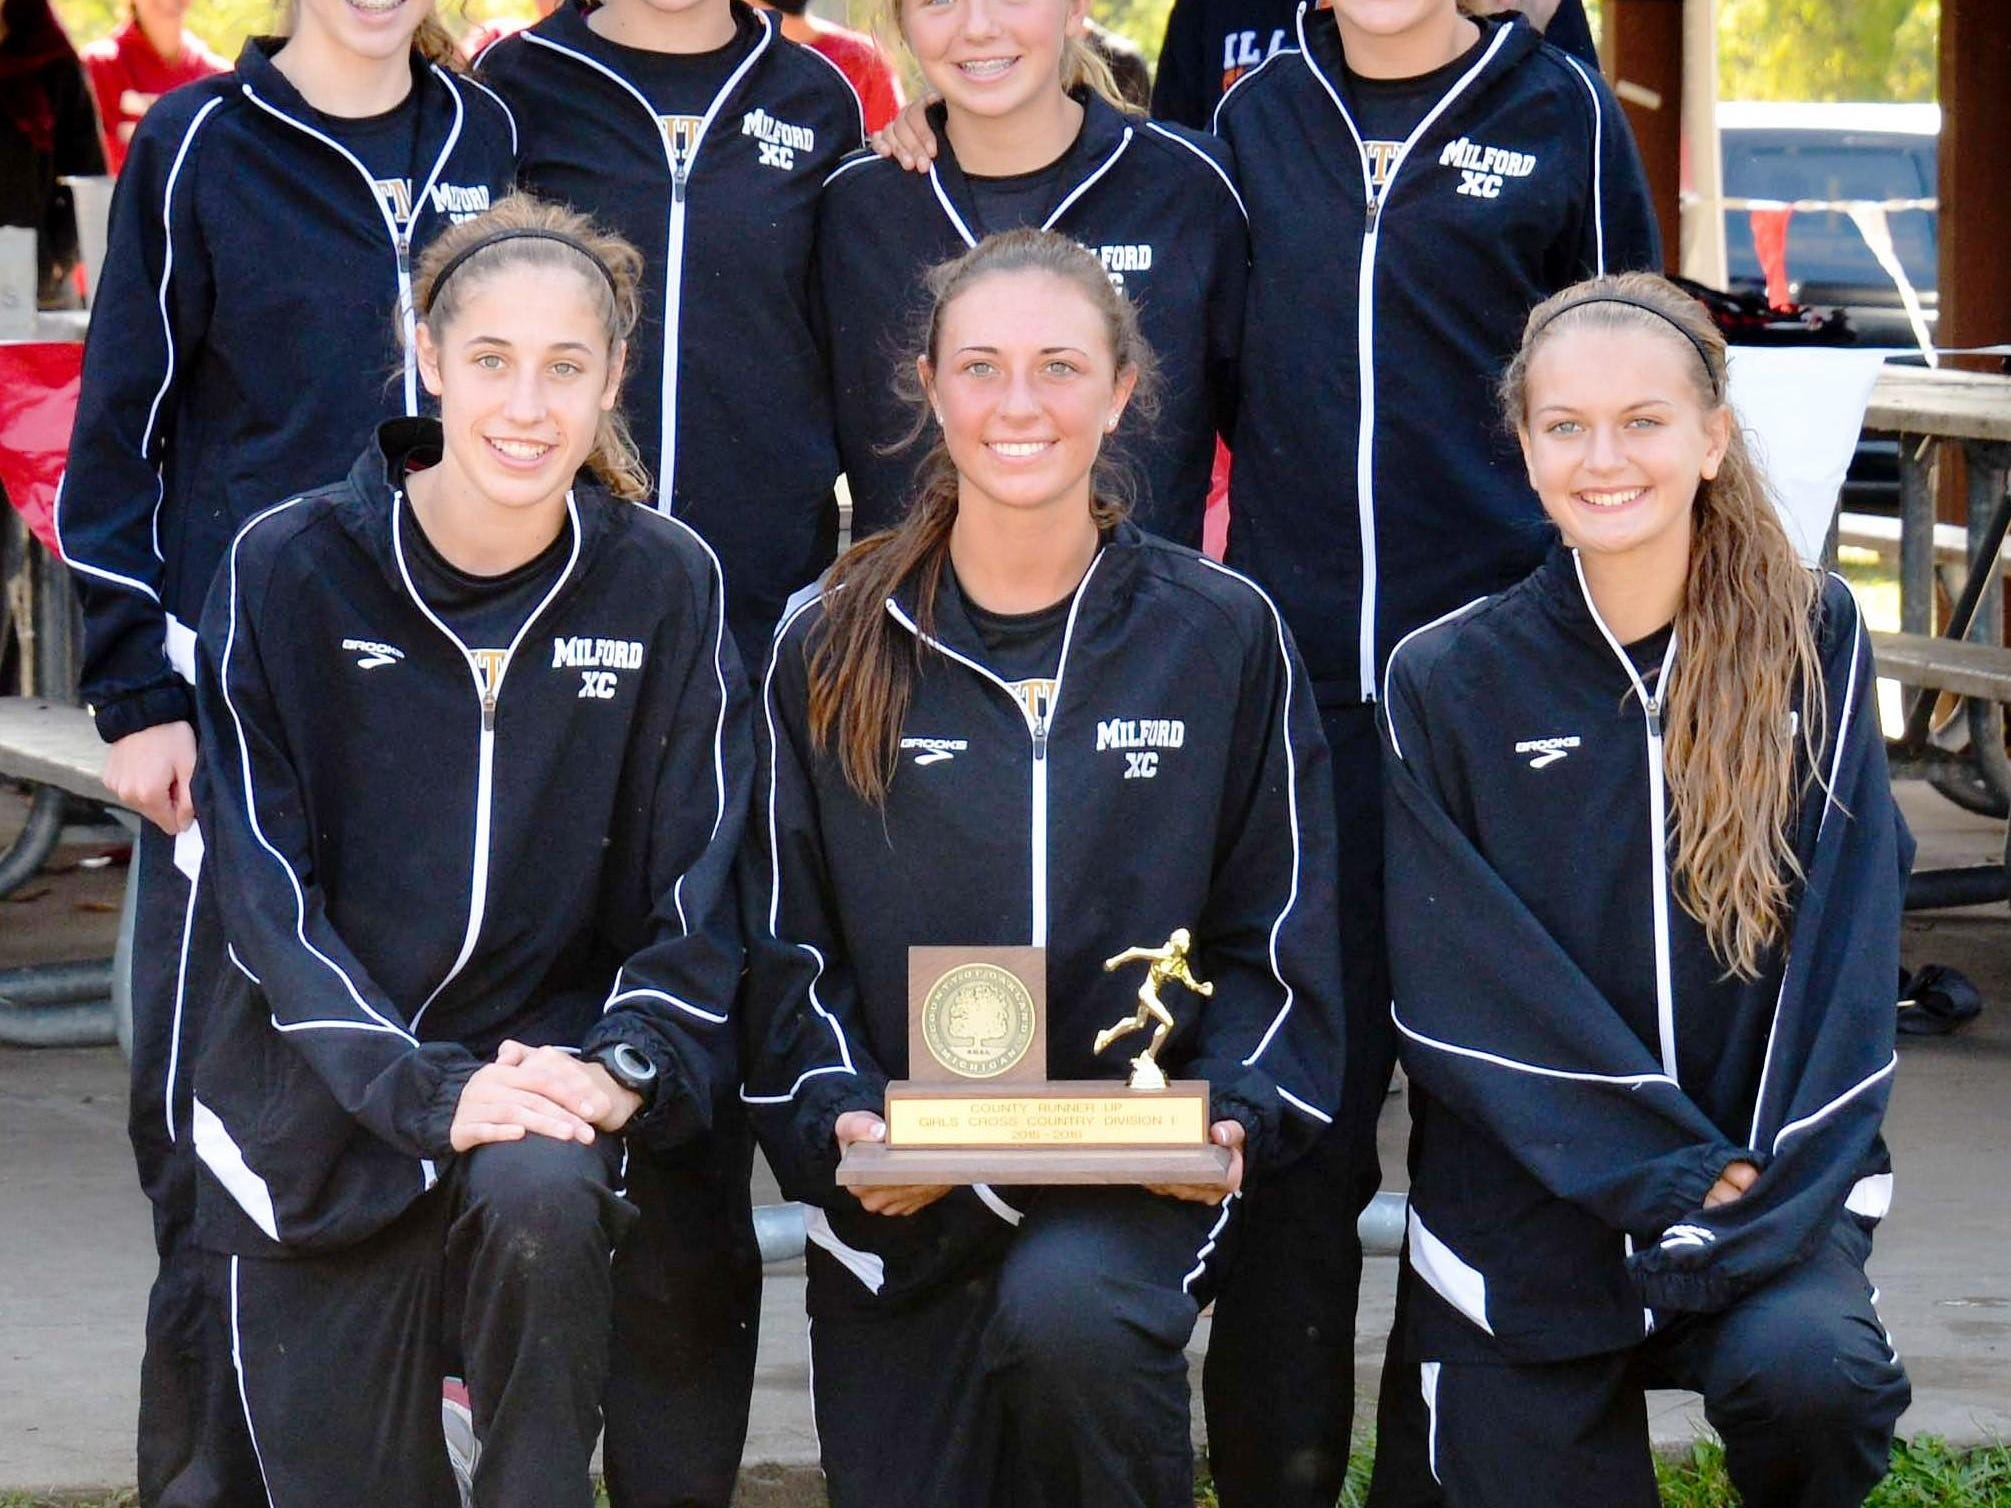 The Milford girls cross country team won the KLAA West title Tuesday over Brighton after finishing runner-up at Oakland County.